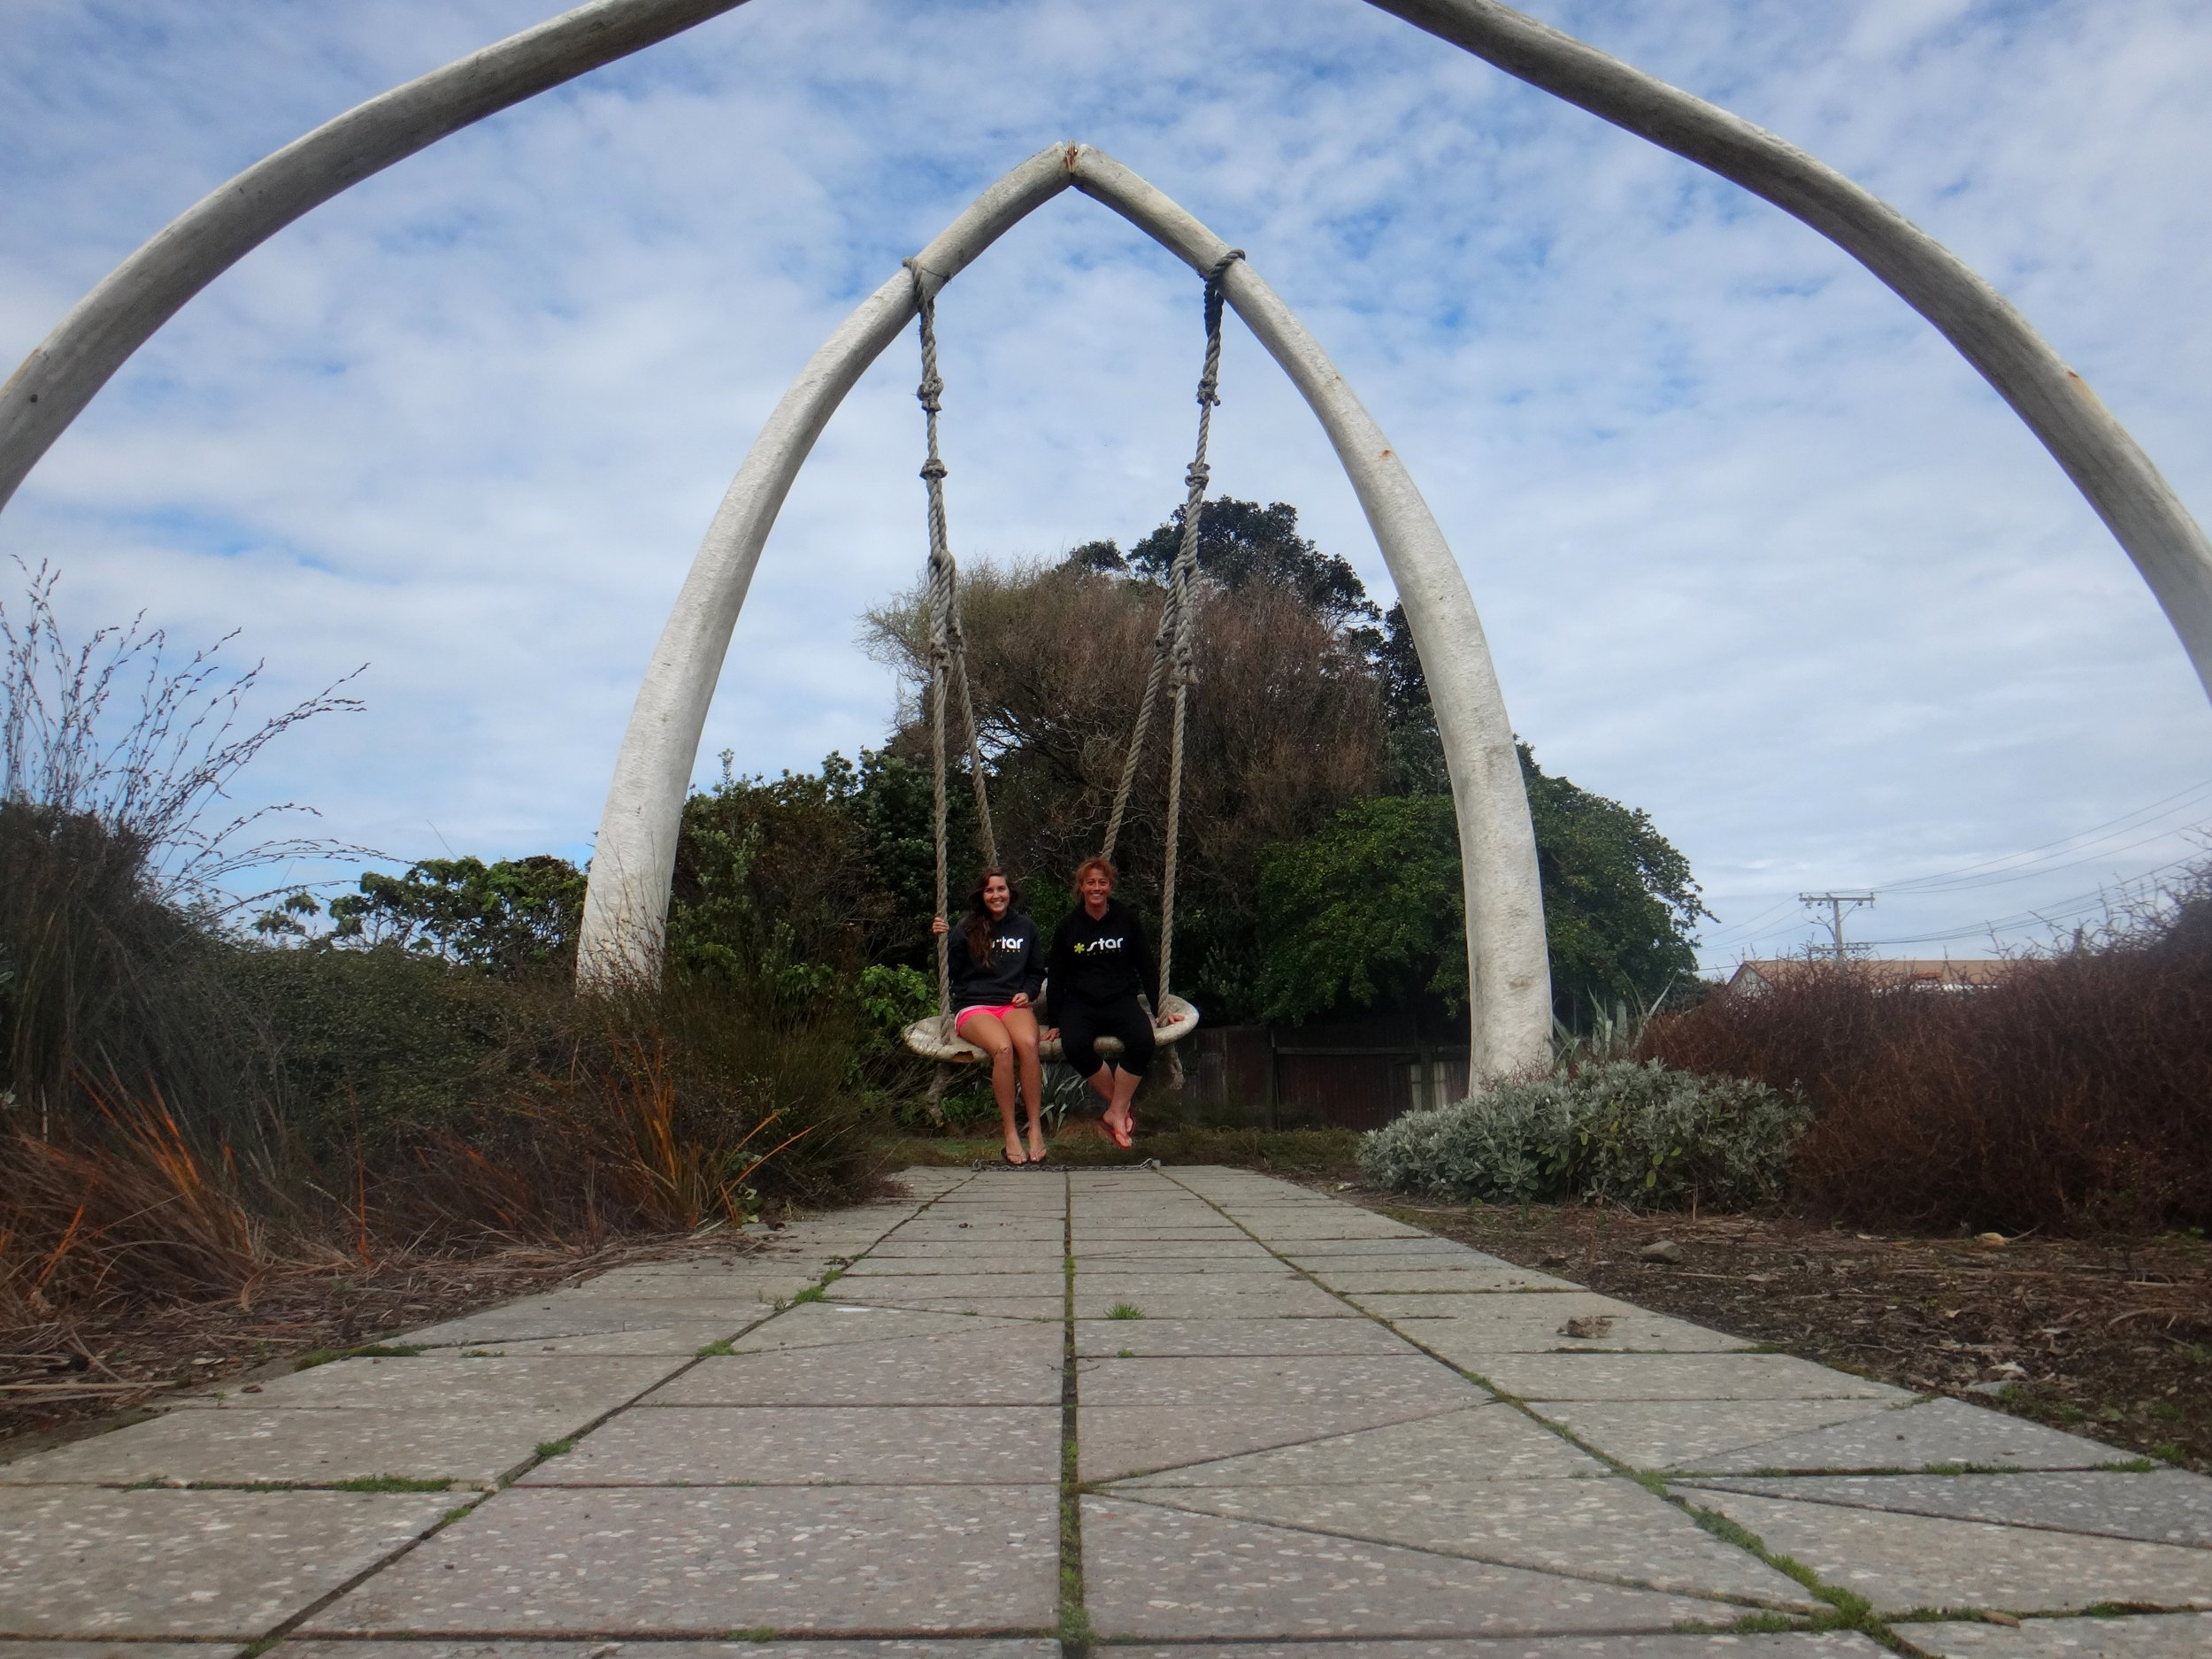 Red and Anna on the giant swing in Patea.